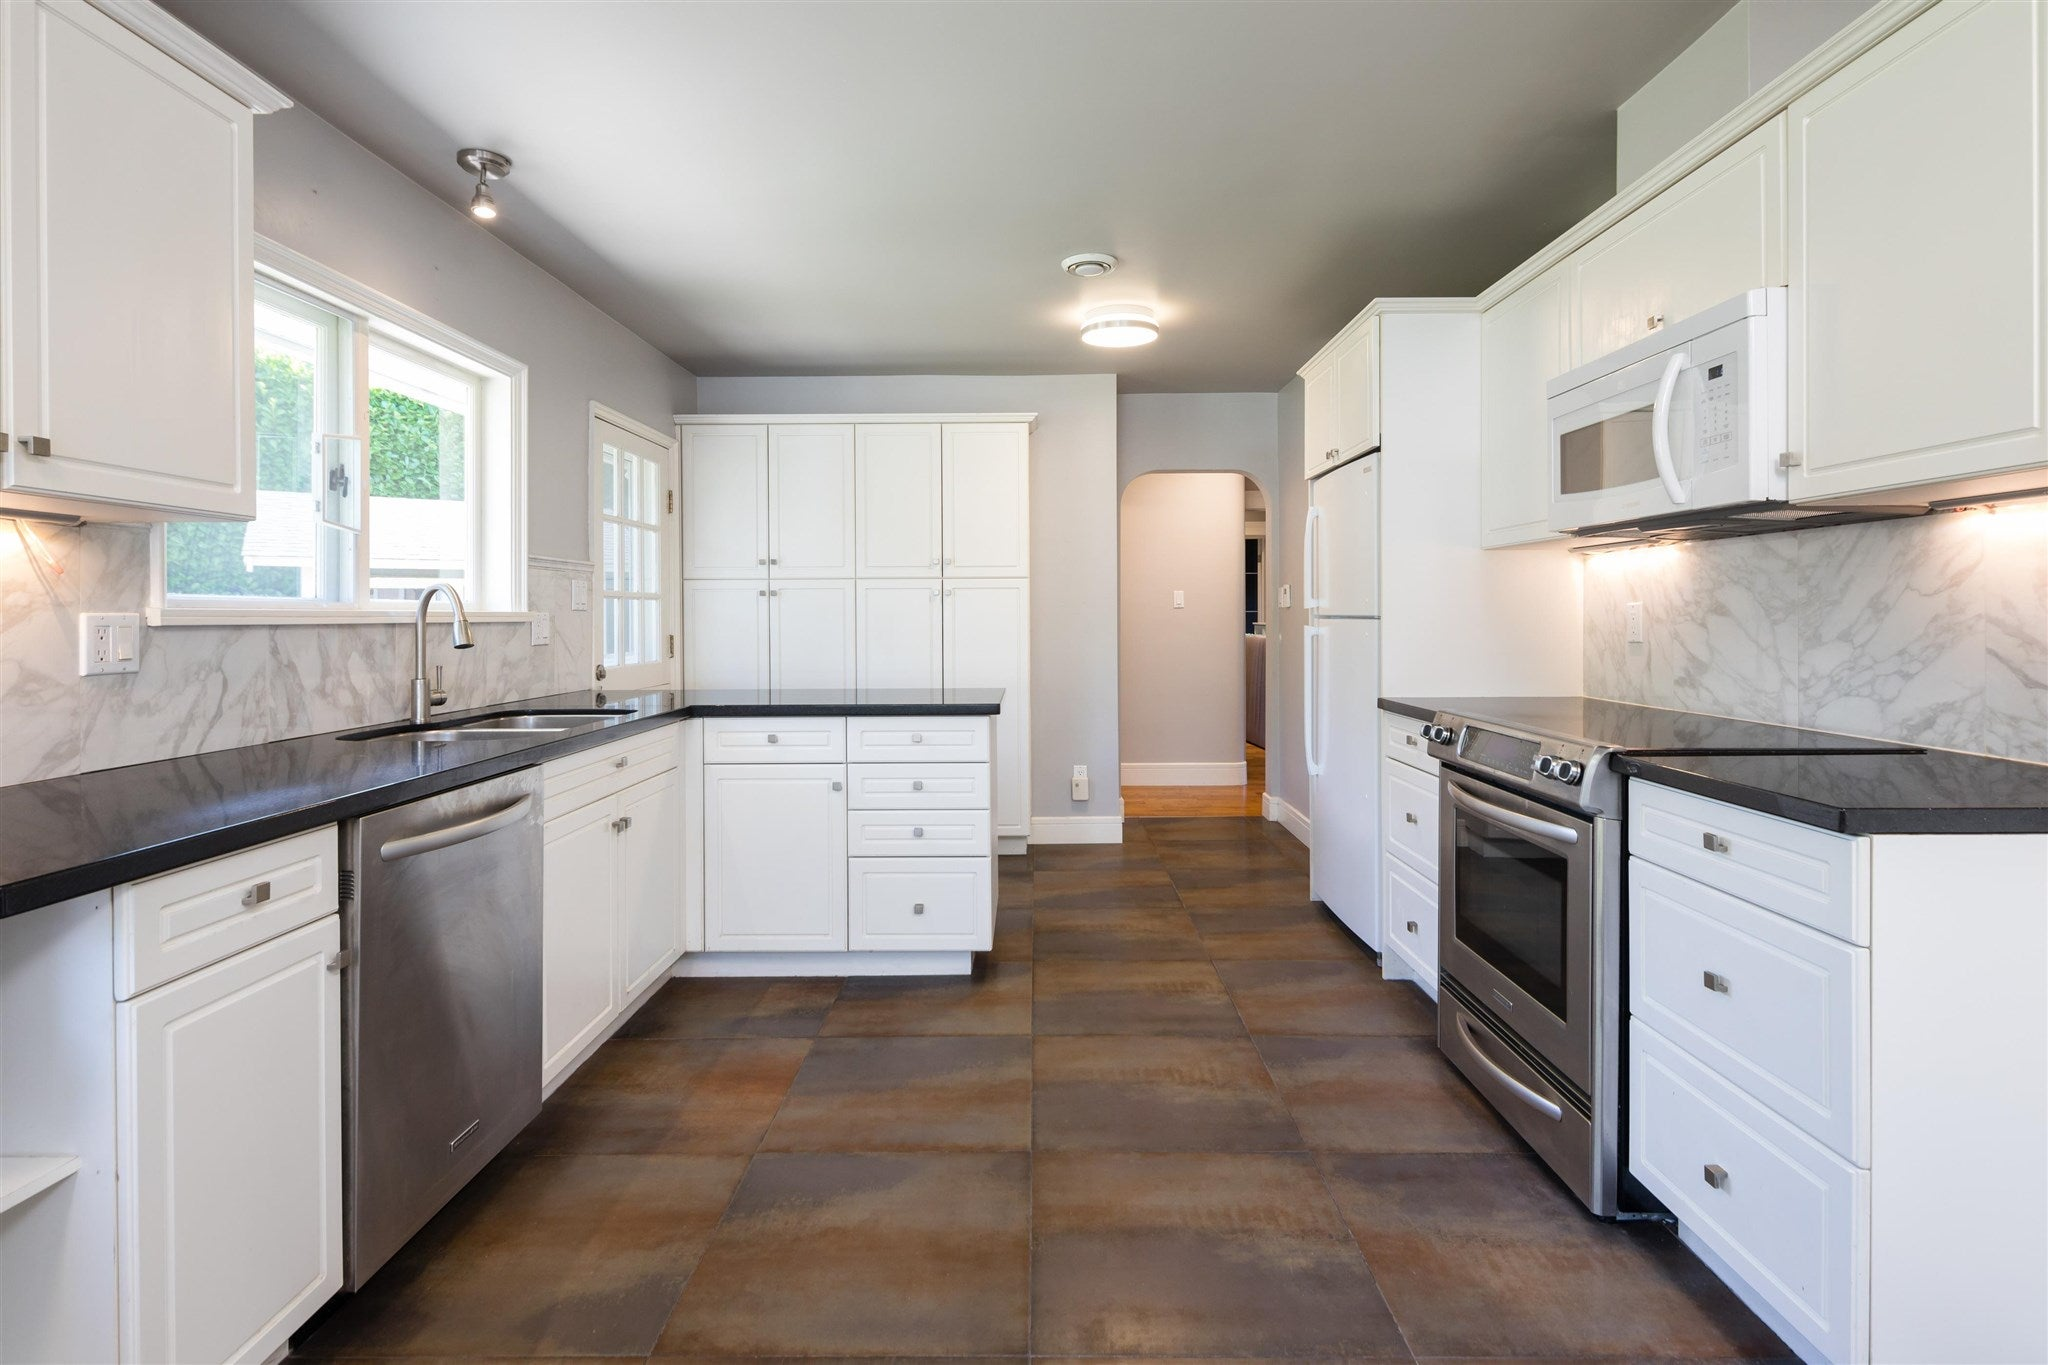 960 W QUEENS ROAD - Edgemont House/Single Family for sale, 2 Bedrooms (R2623308) - #10